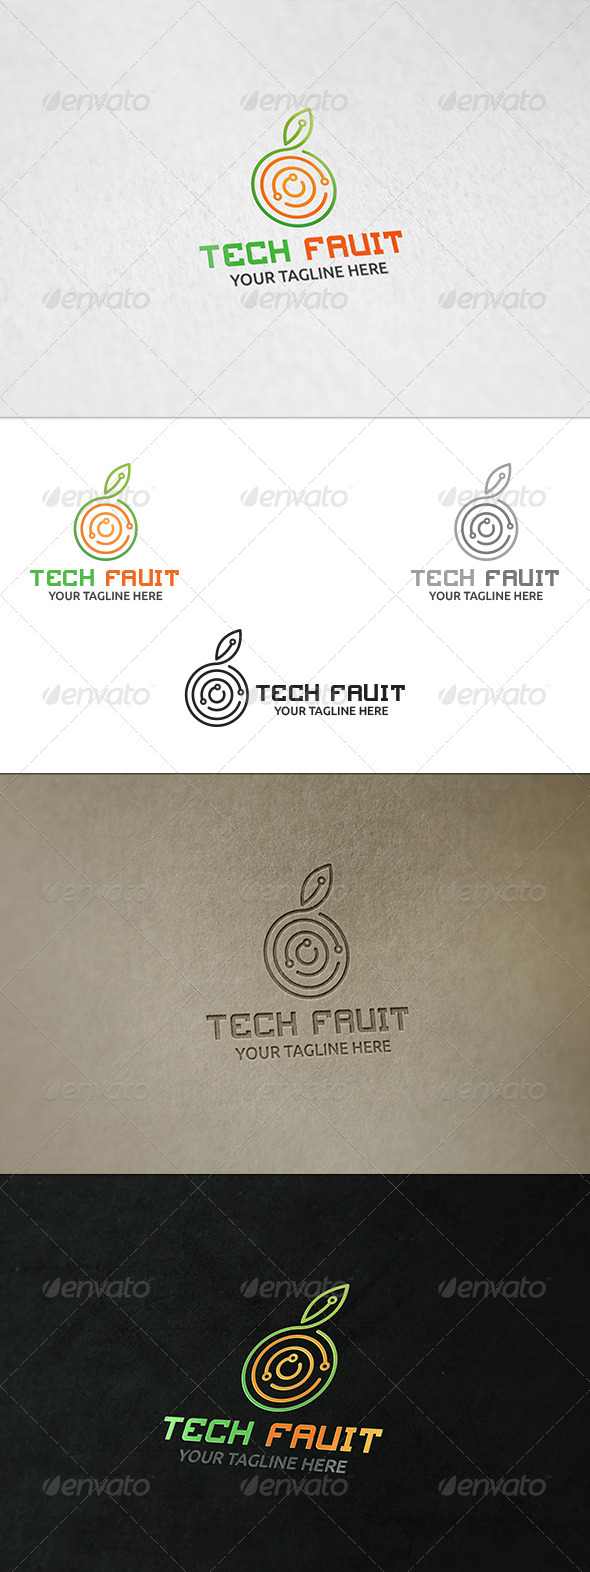 GraphicRiver Tech Fruit Logo Template 8539642